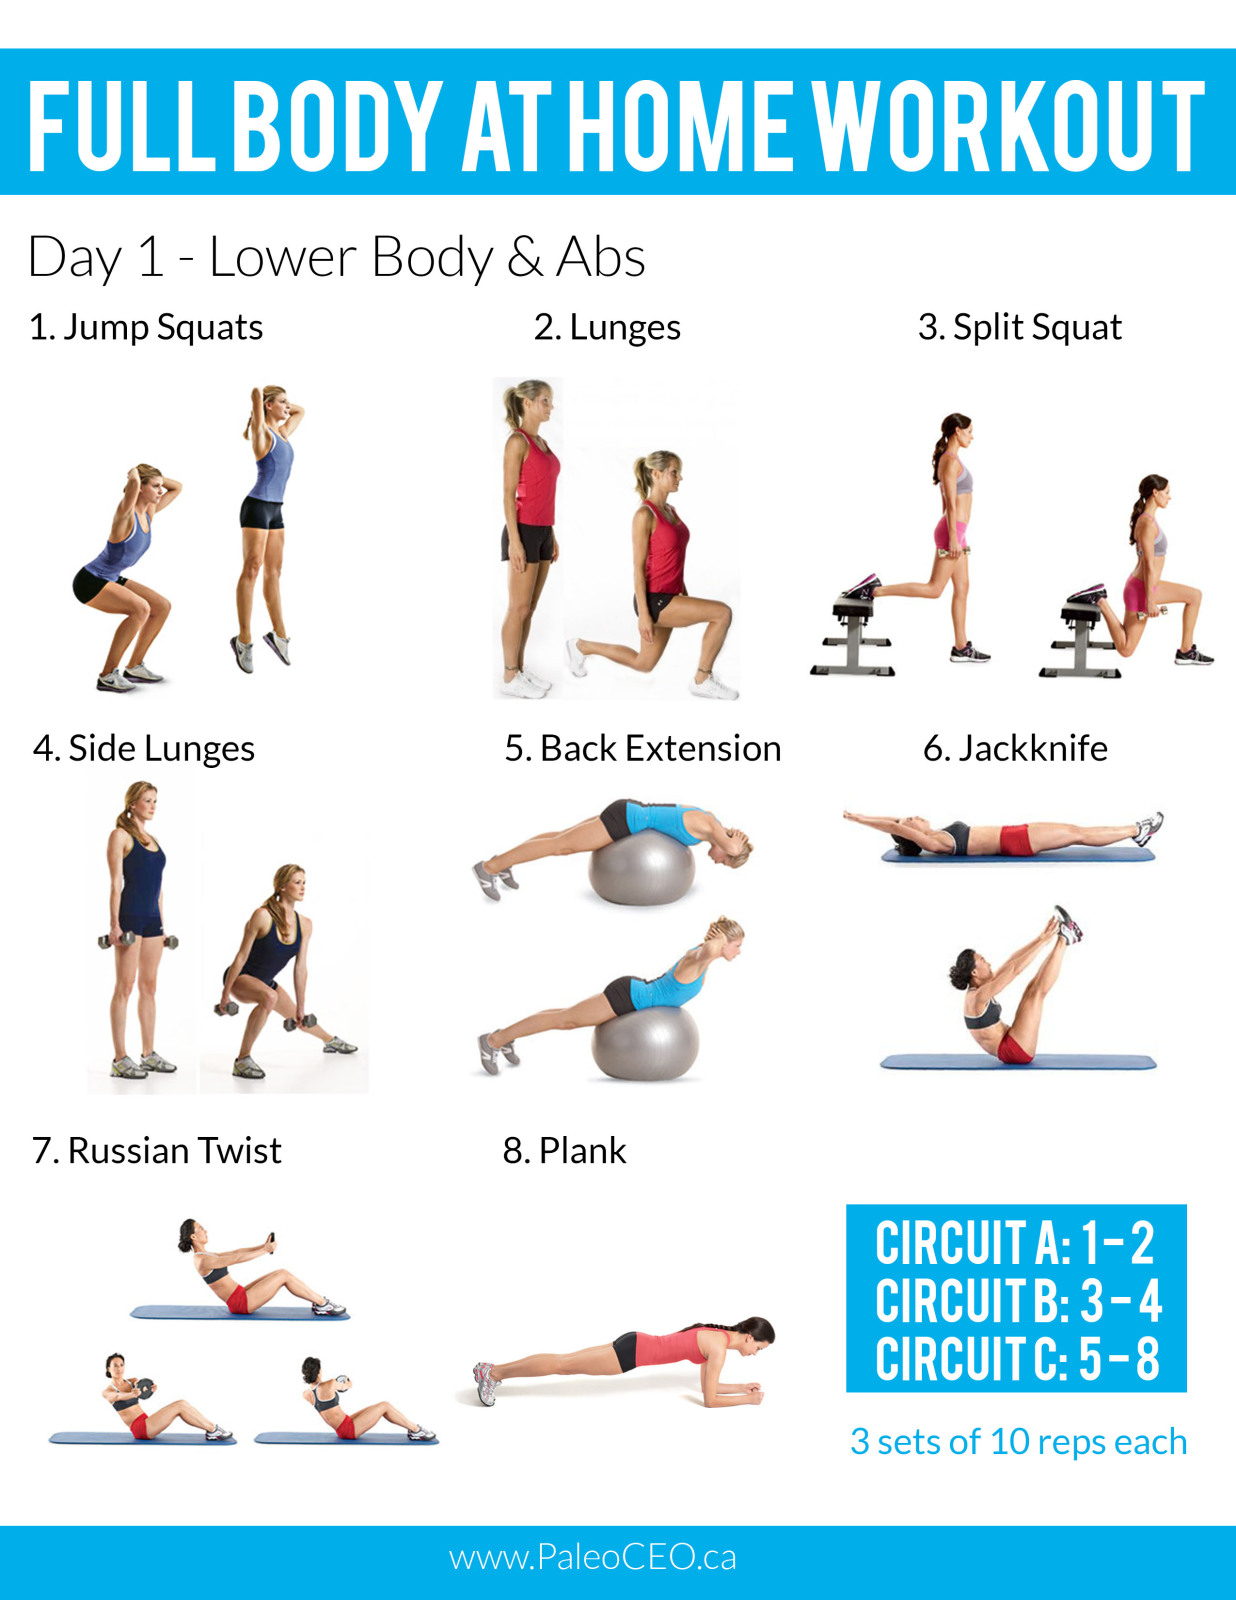 A Full Body At Home Workout